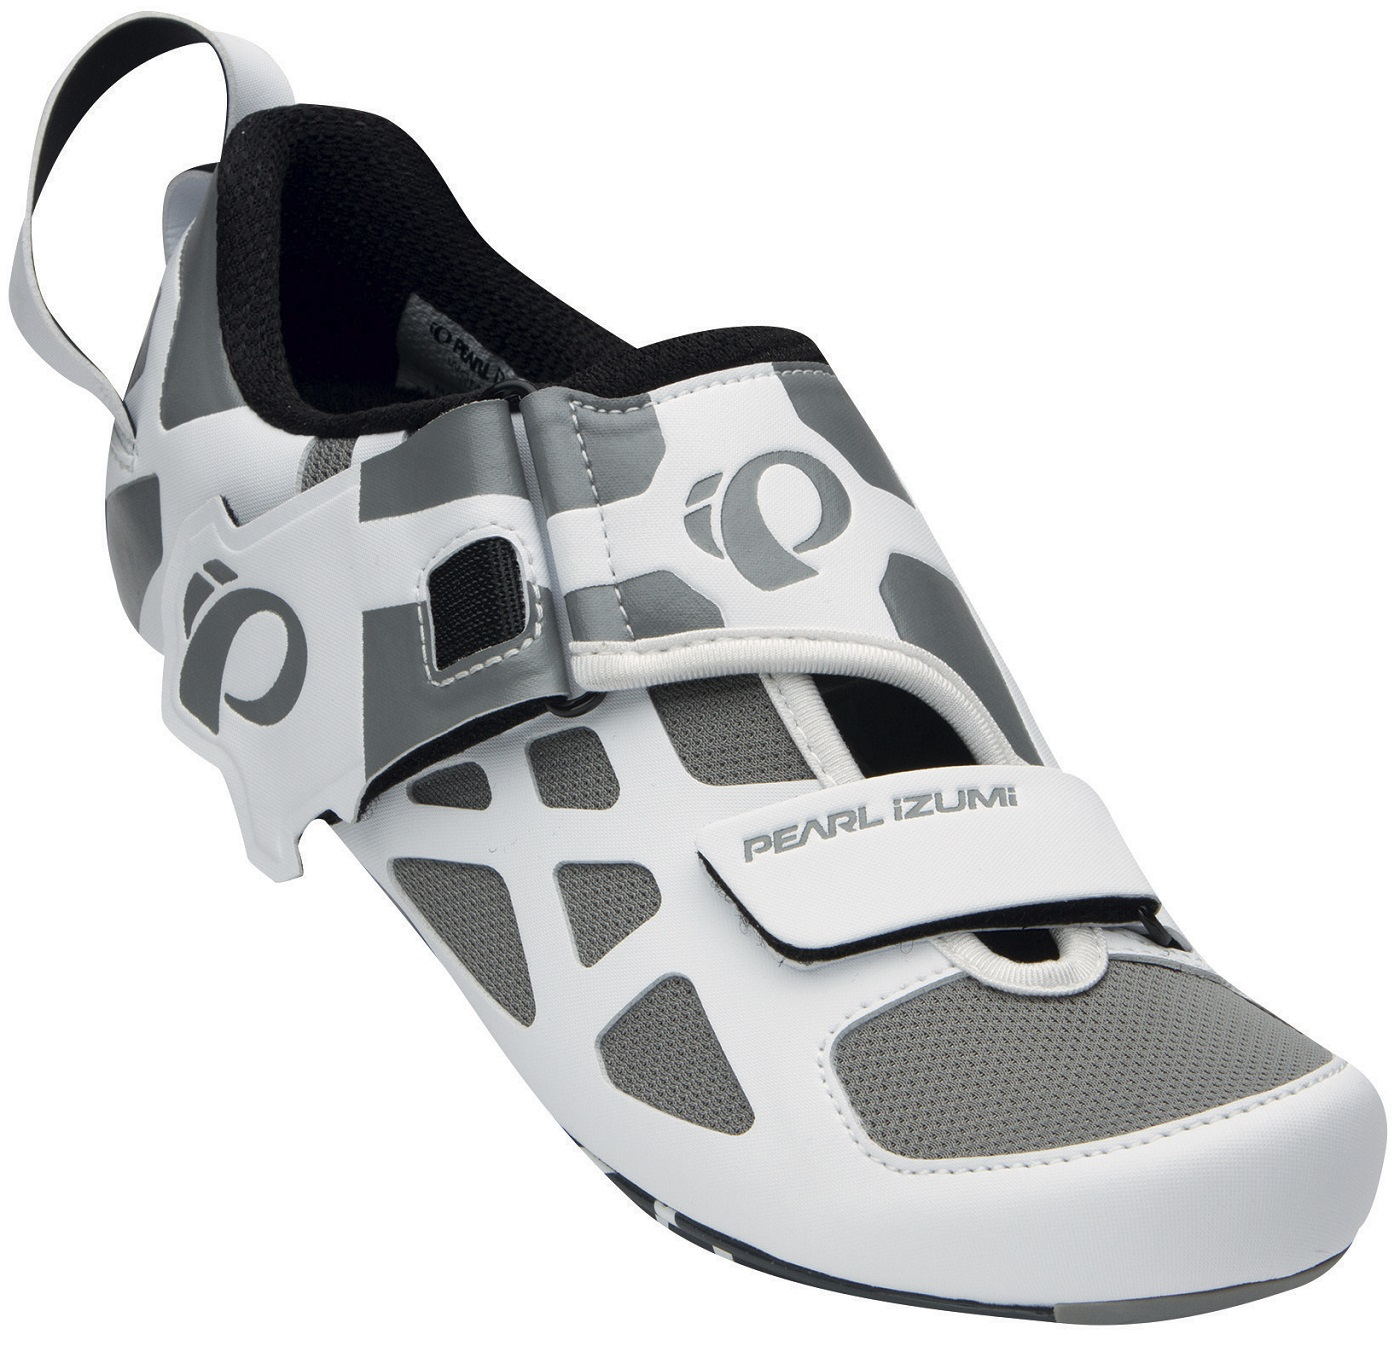 Pearl Izumi Men S Tri Fly V Carbon Cycling Shoe Review